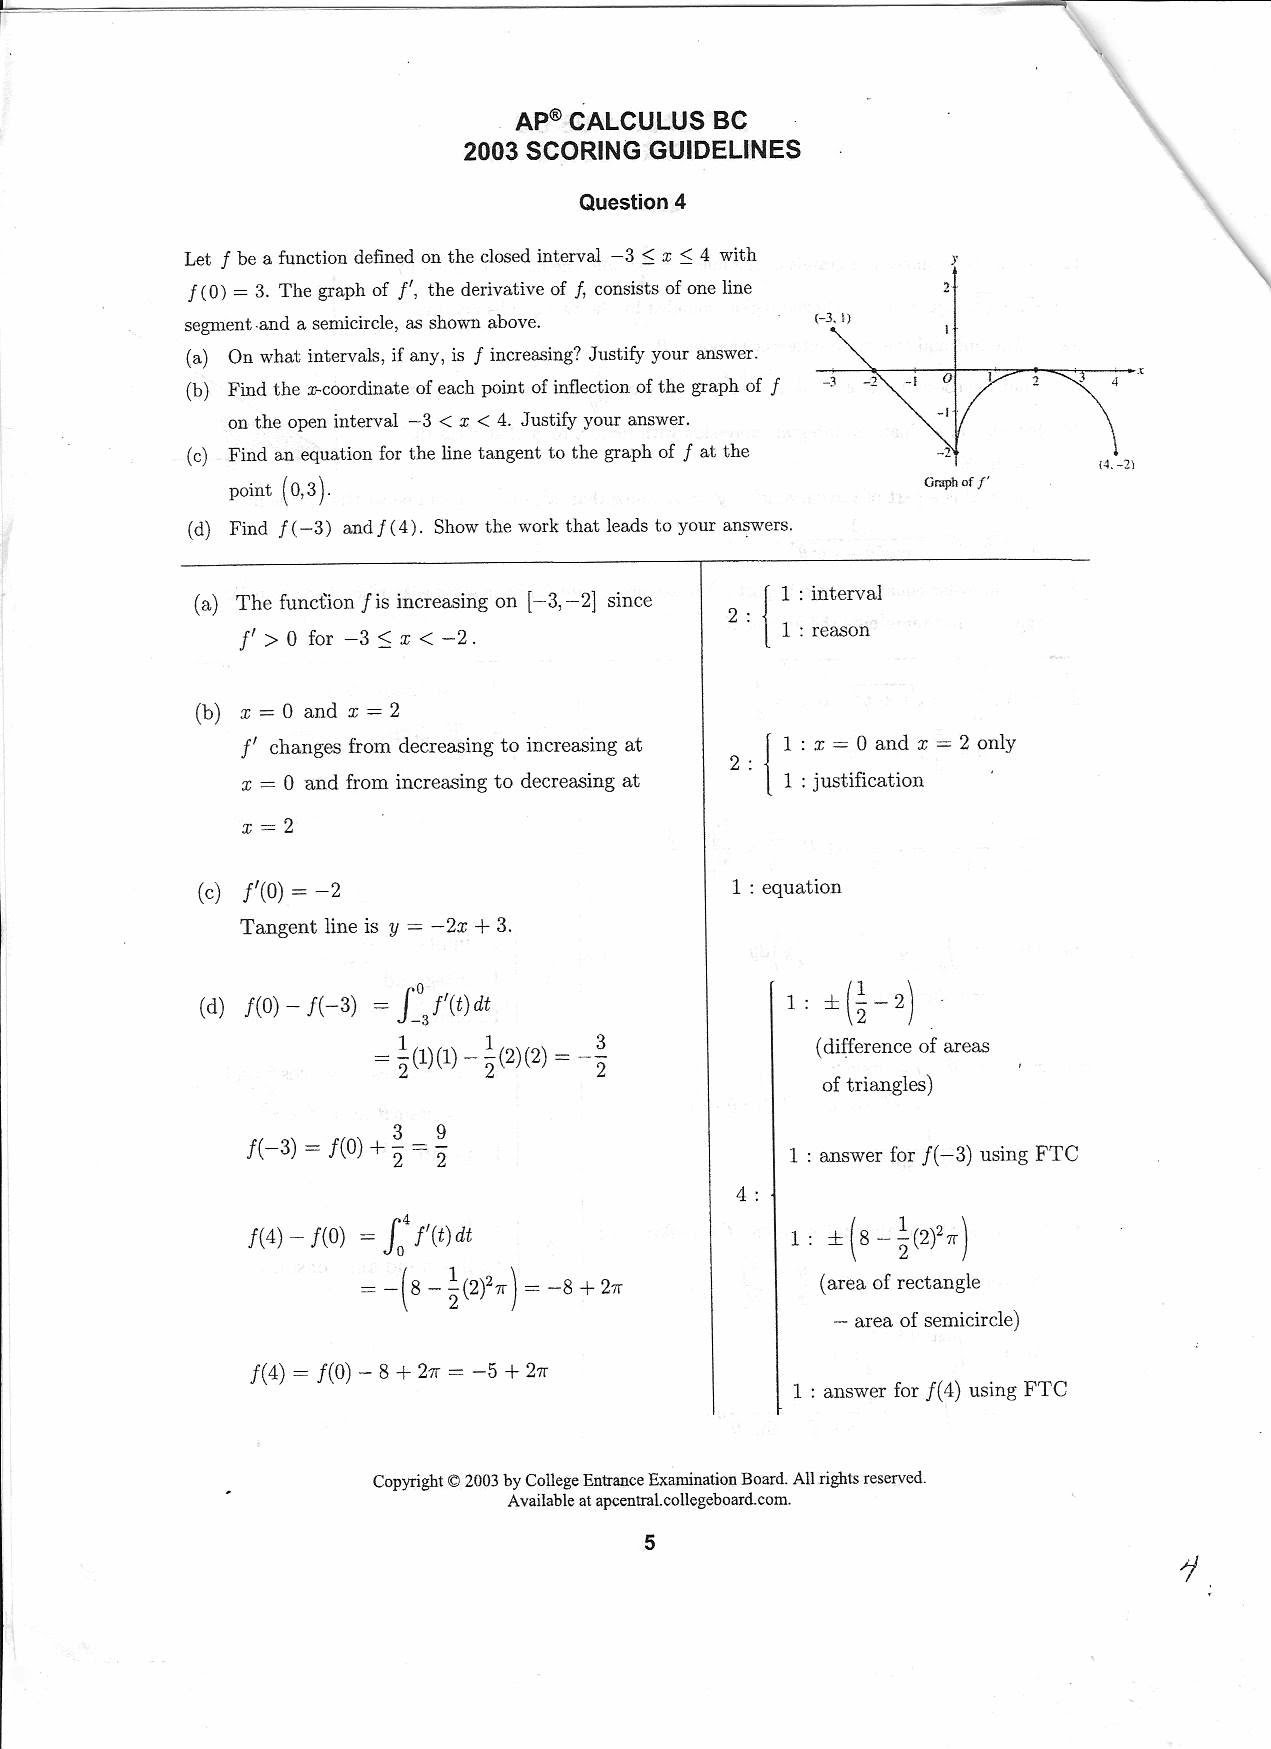 BC Calculus 2003 Question 4